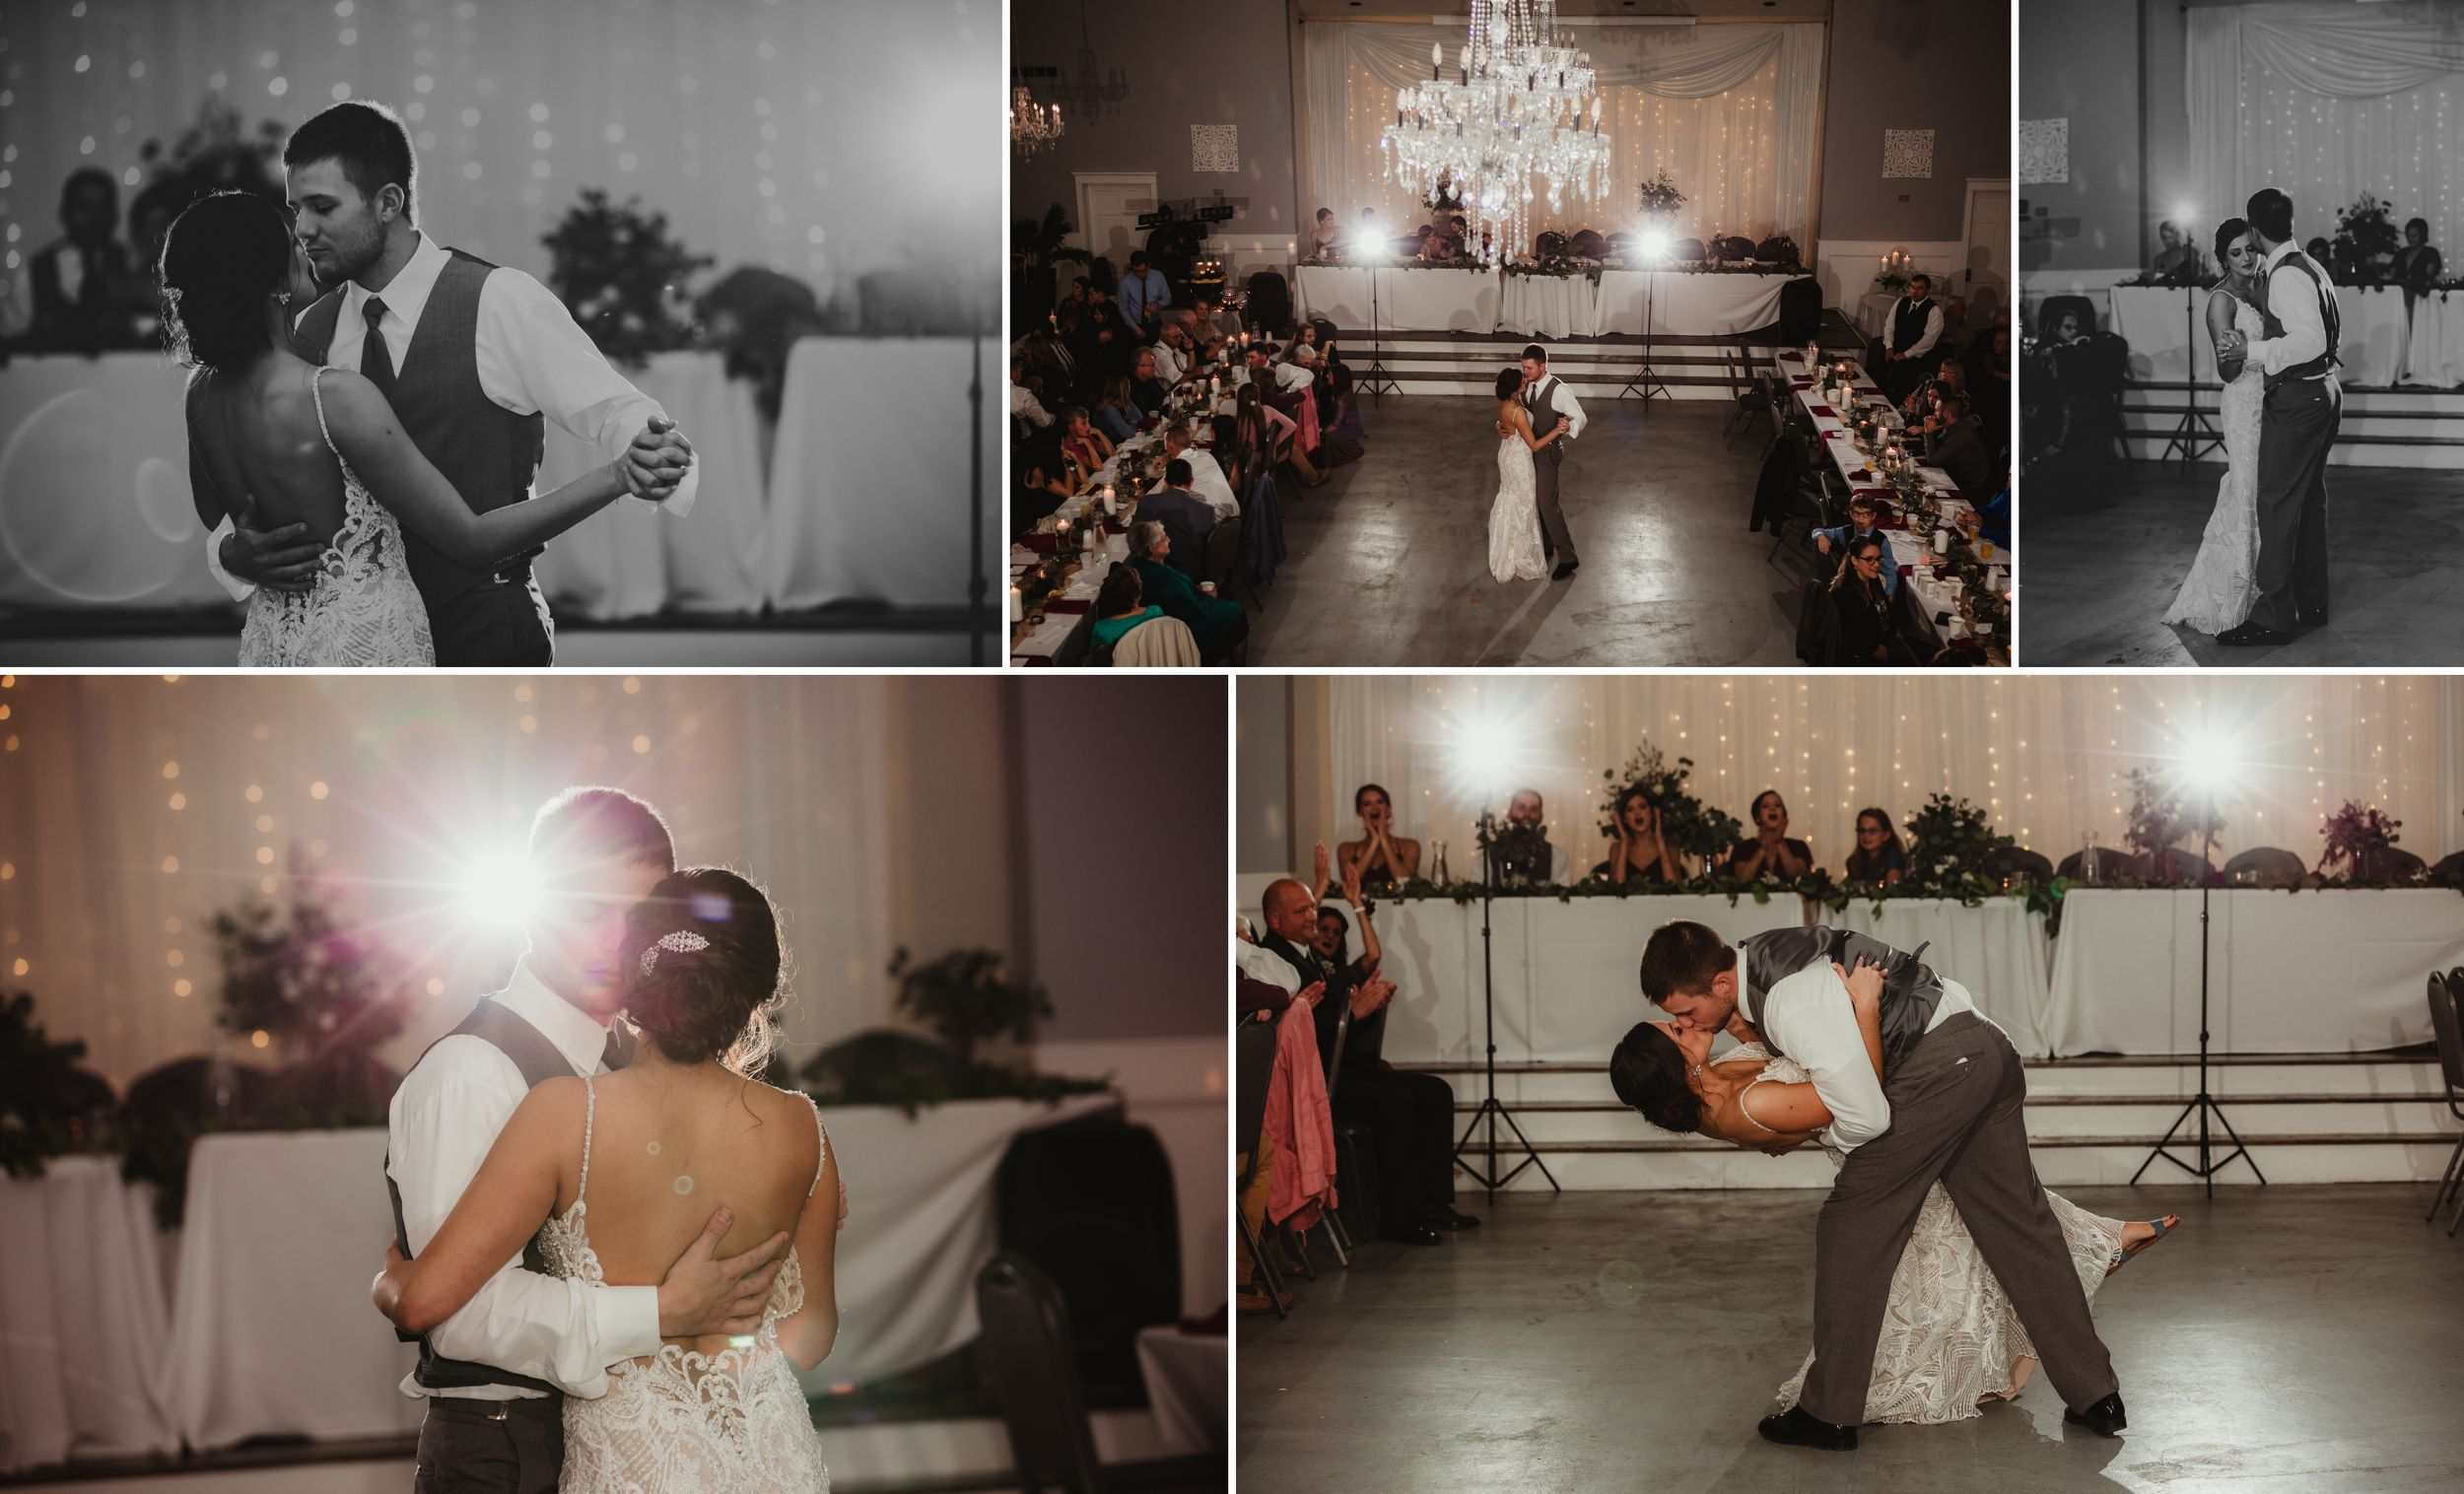 Collage of the bride and groom dancing. Off camera flash flaring behind them and a chandelier above.